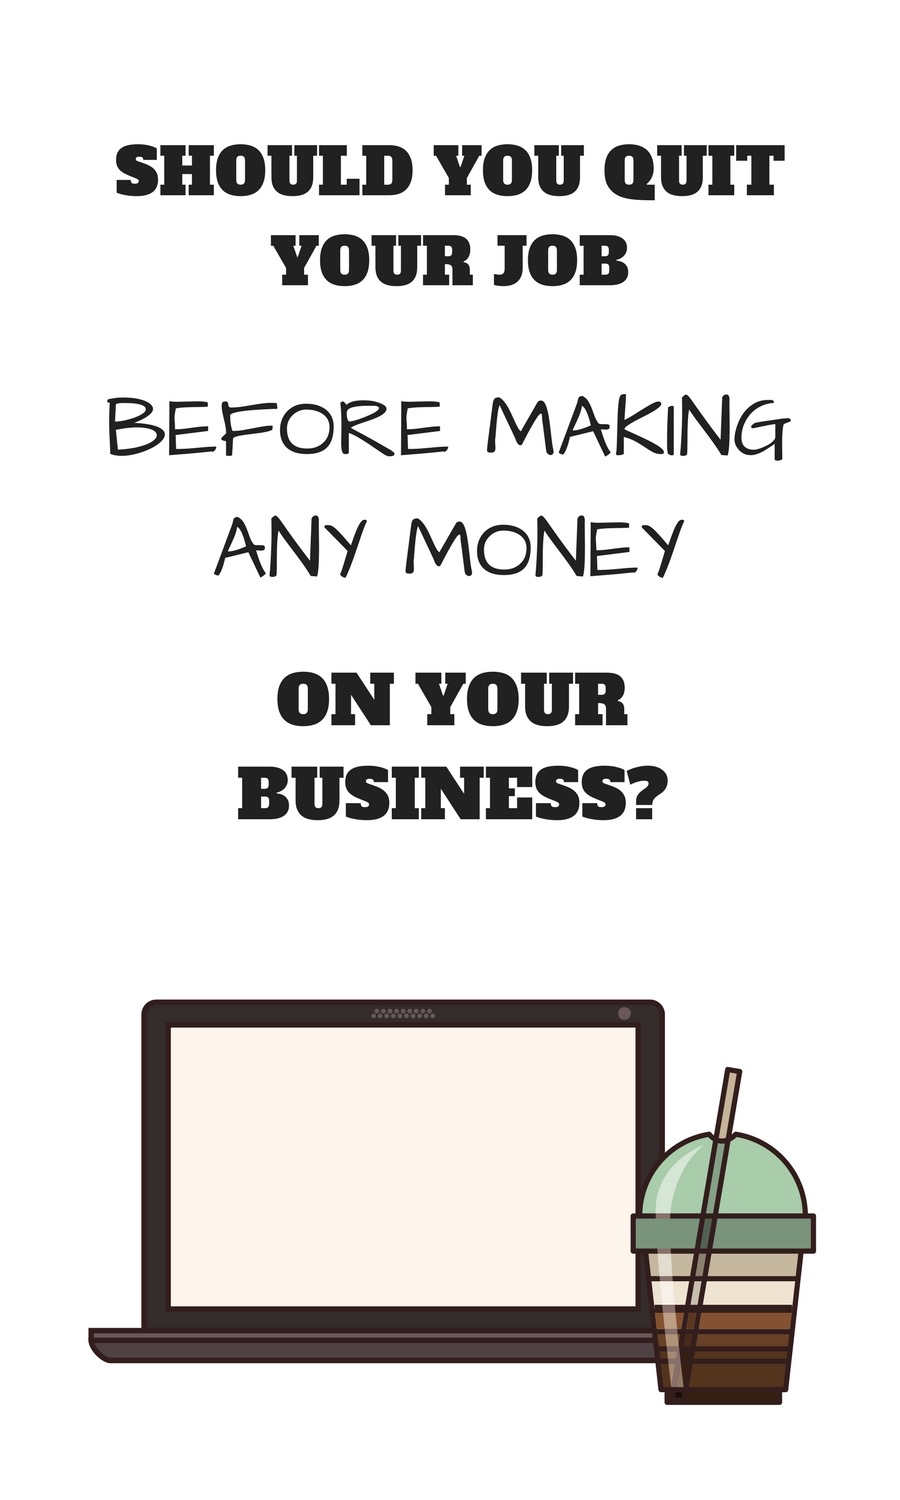 Quitting job before making money | Should you quit your job